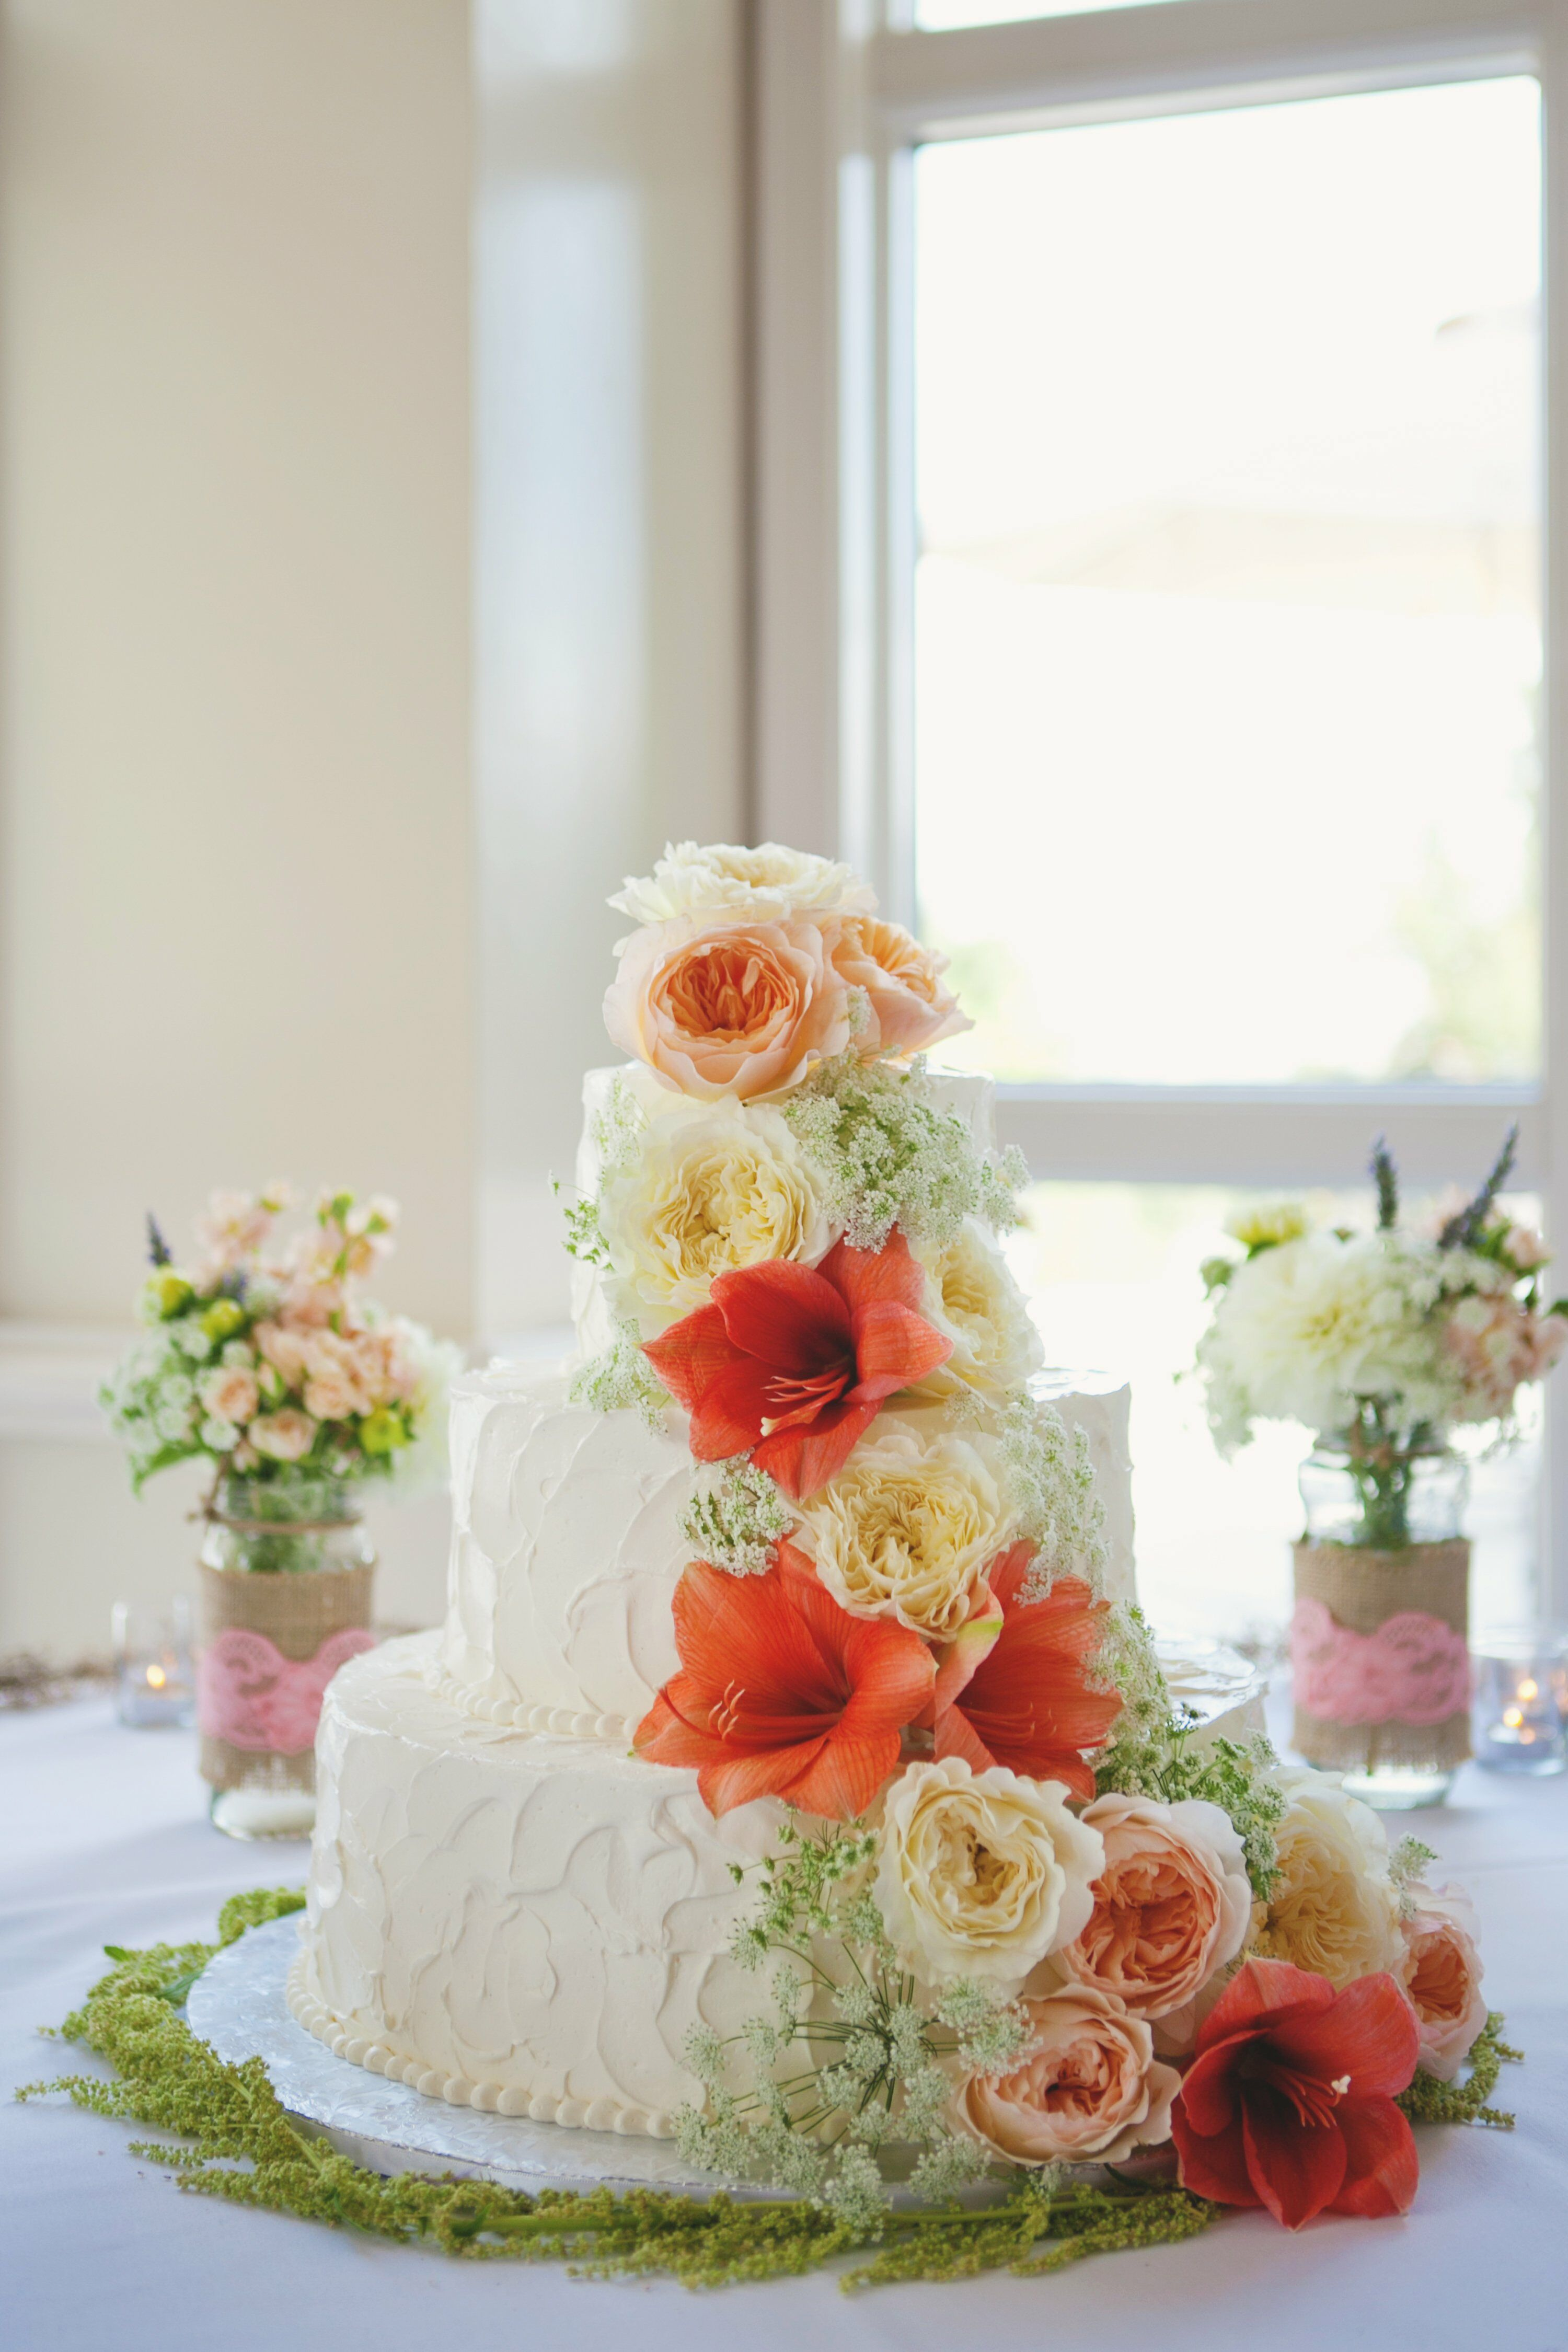 Elegant Buttercream Wedding Cake